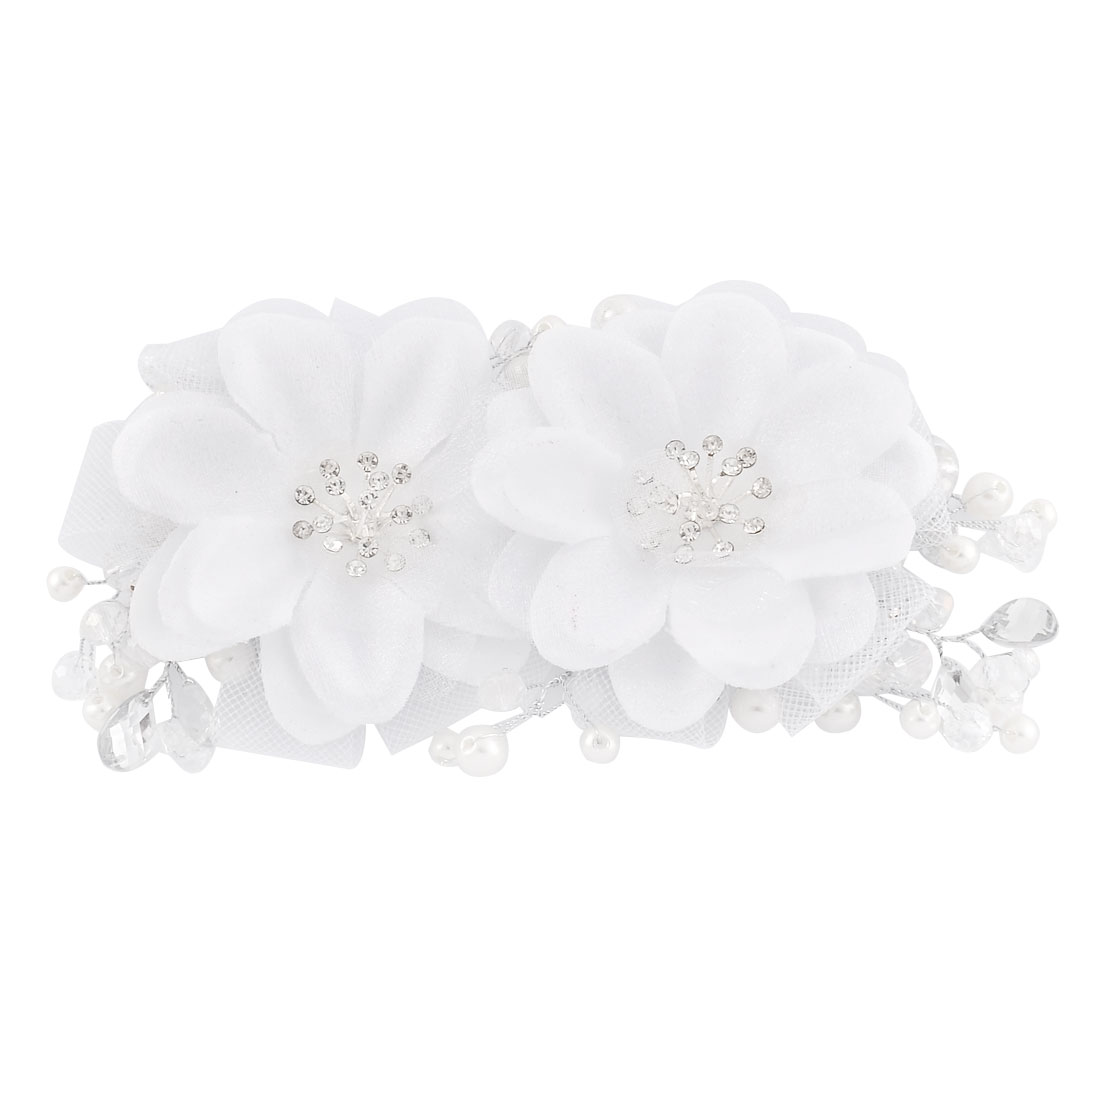 Bridal Bride Double Flower Pattern Imitation Pearl Mesh Detail Hair Band Headband Decor